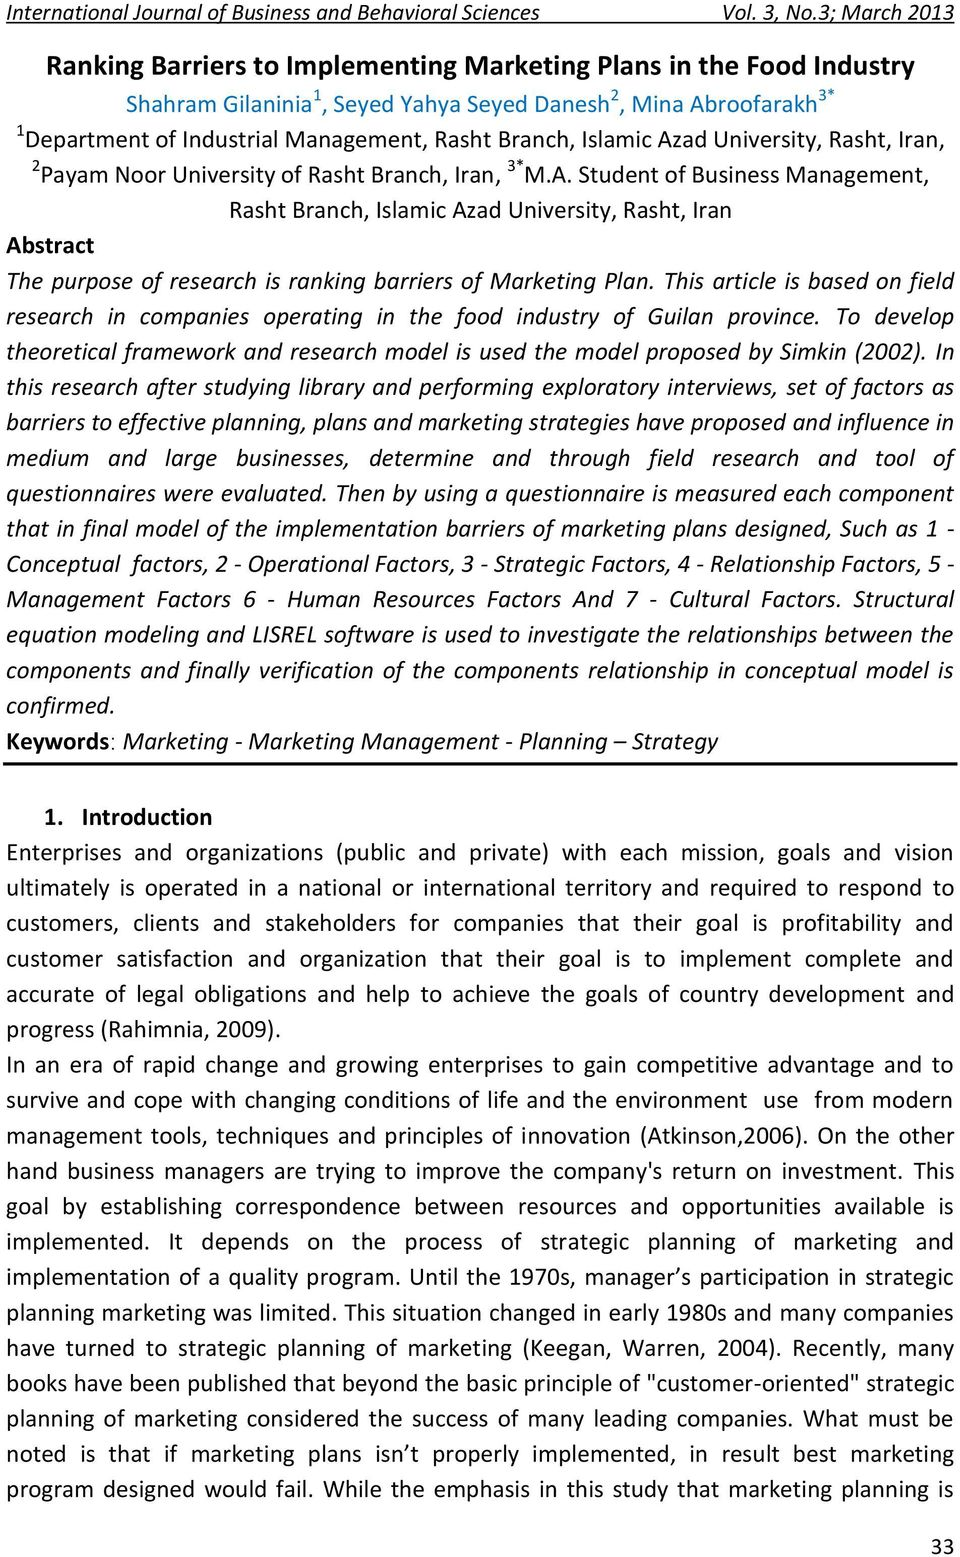 This article is based on field research in companies operating in the food industry of Guilan To develop theoretical framework and research model is used the model proposed by Simkin (2002).